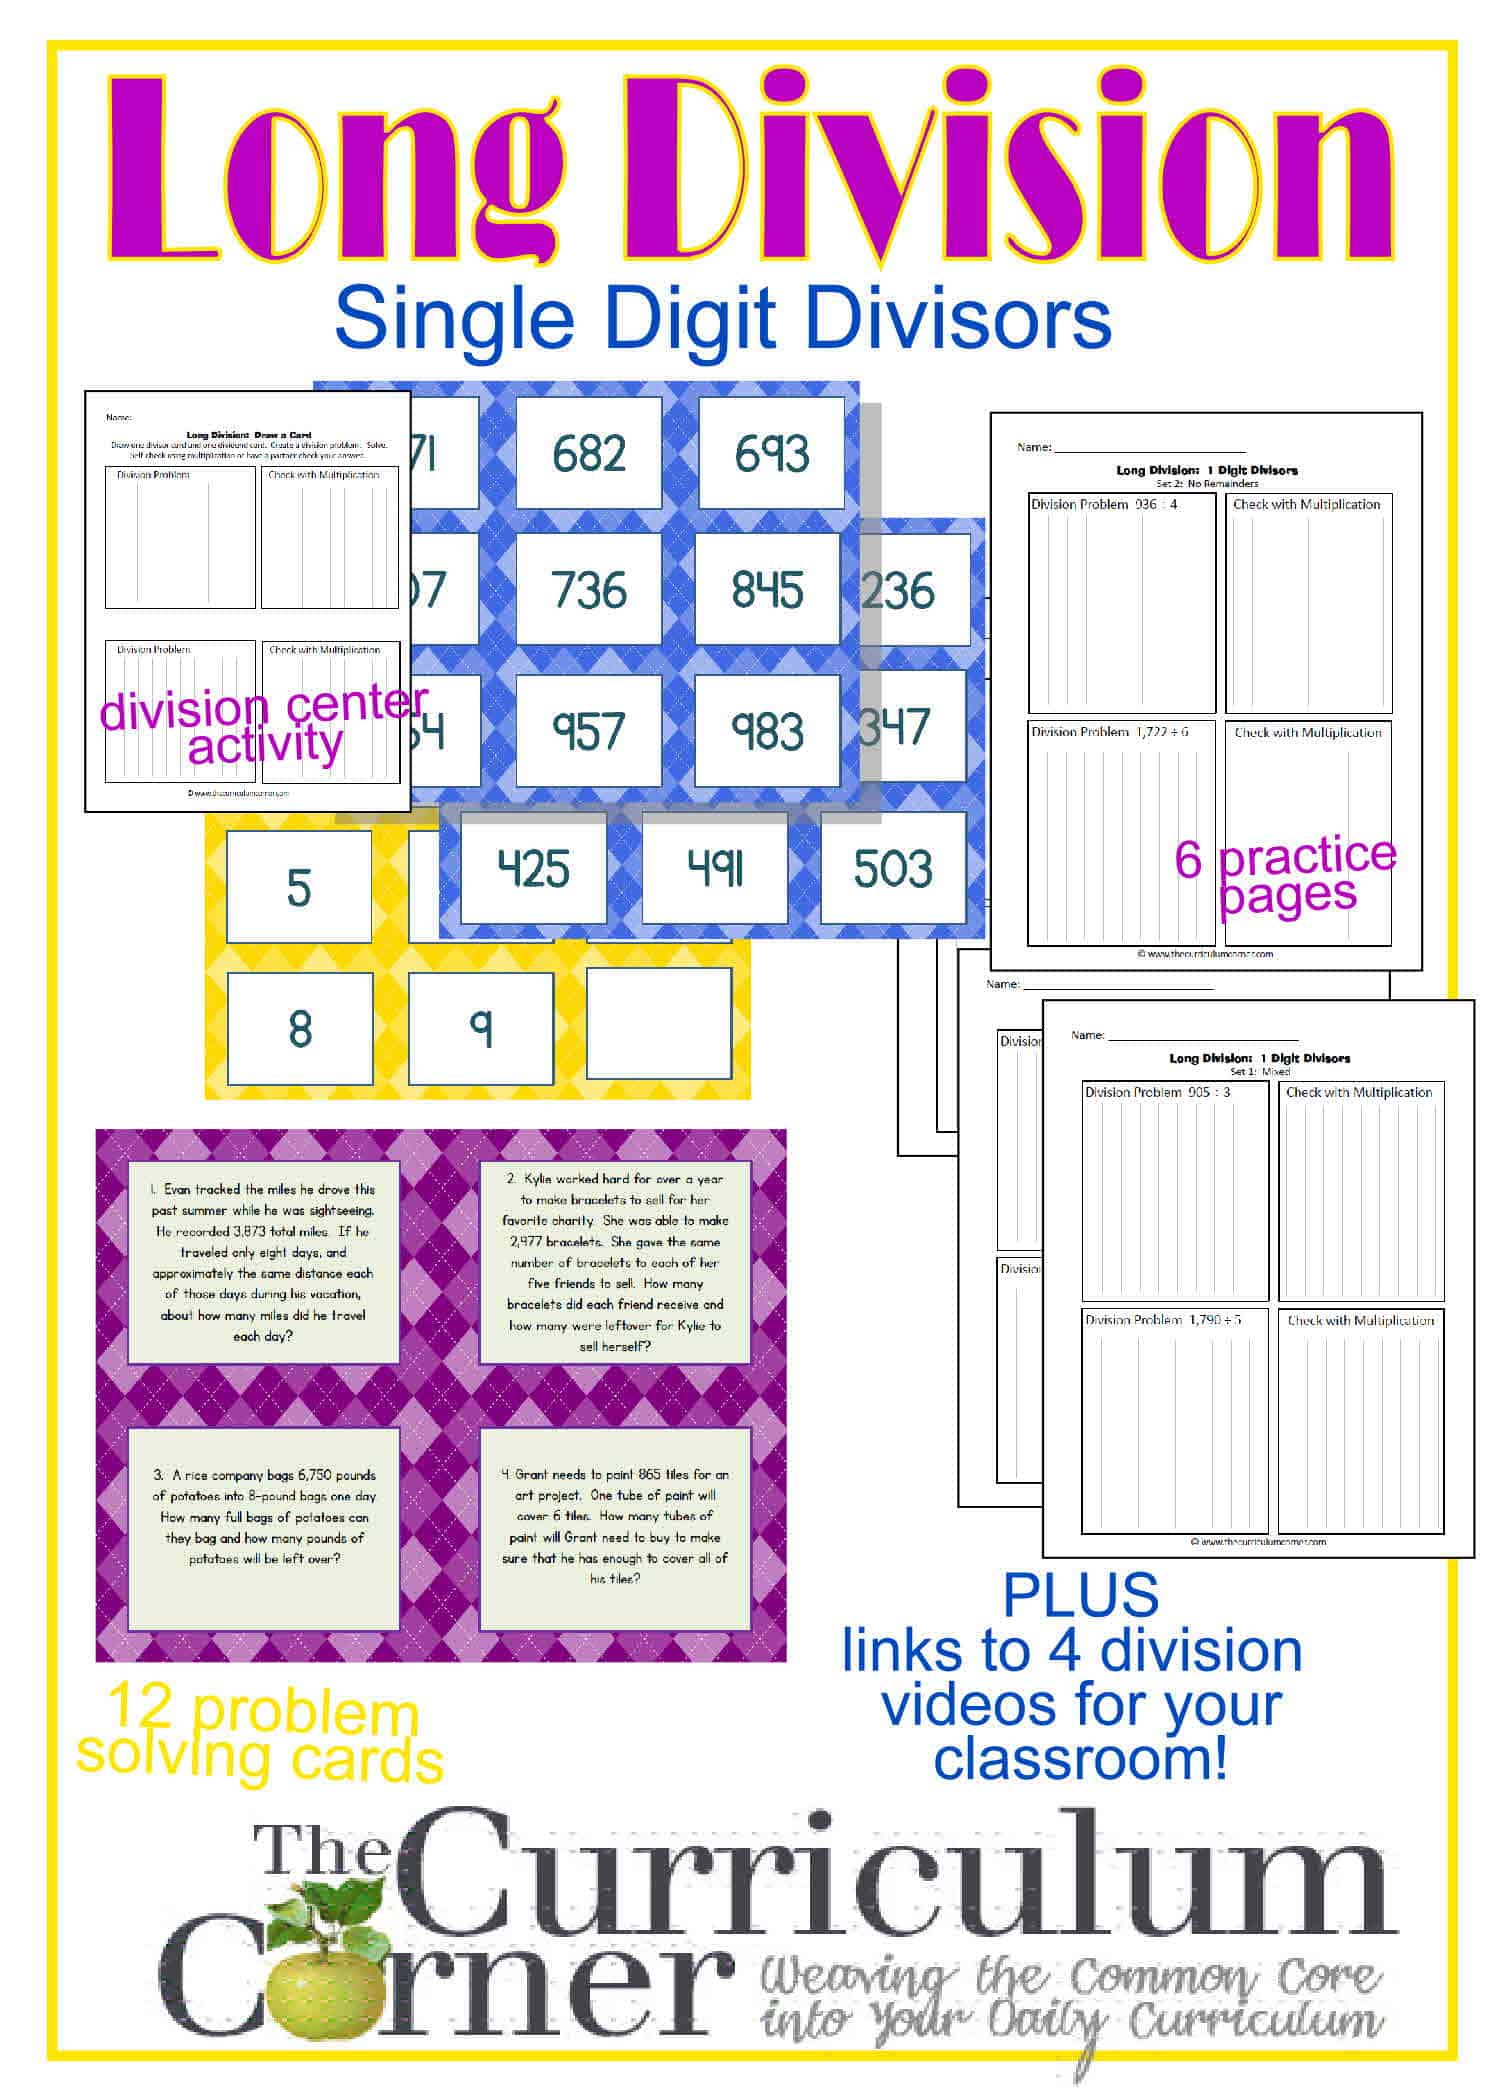 Long Division Resources (1-Digit Divisor)